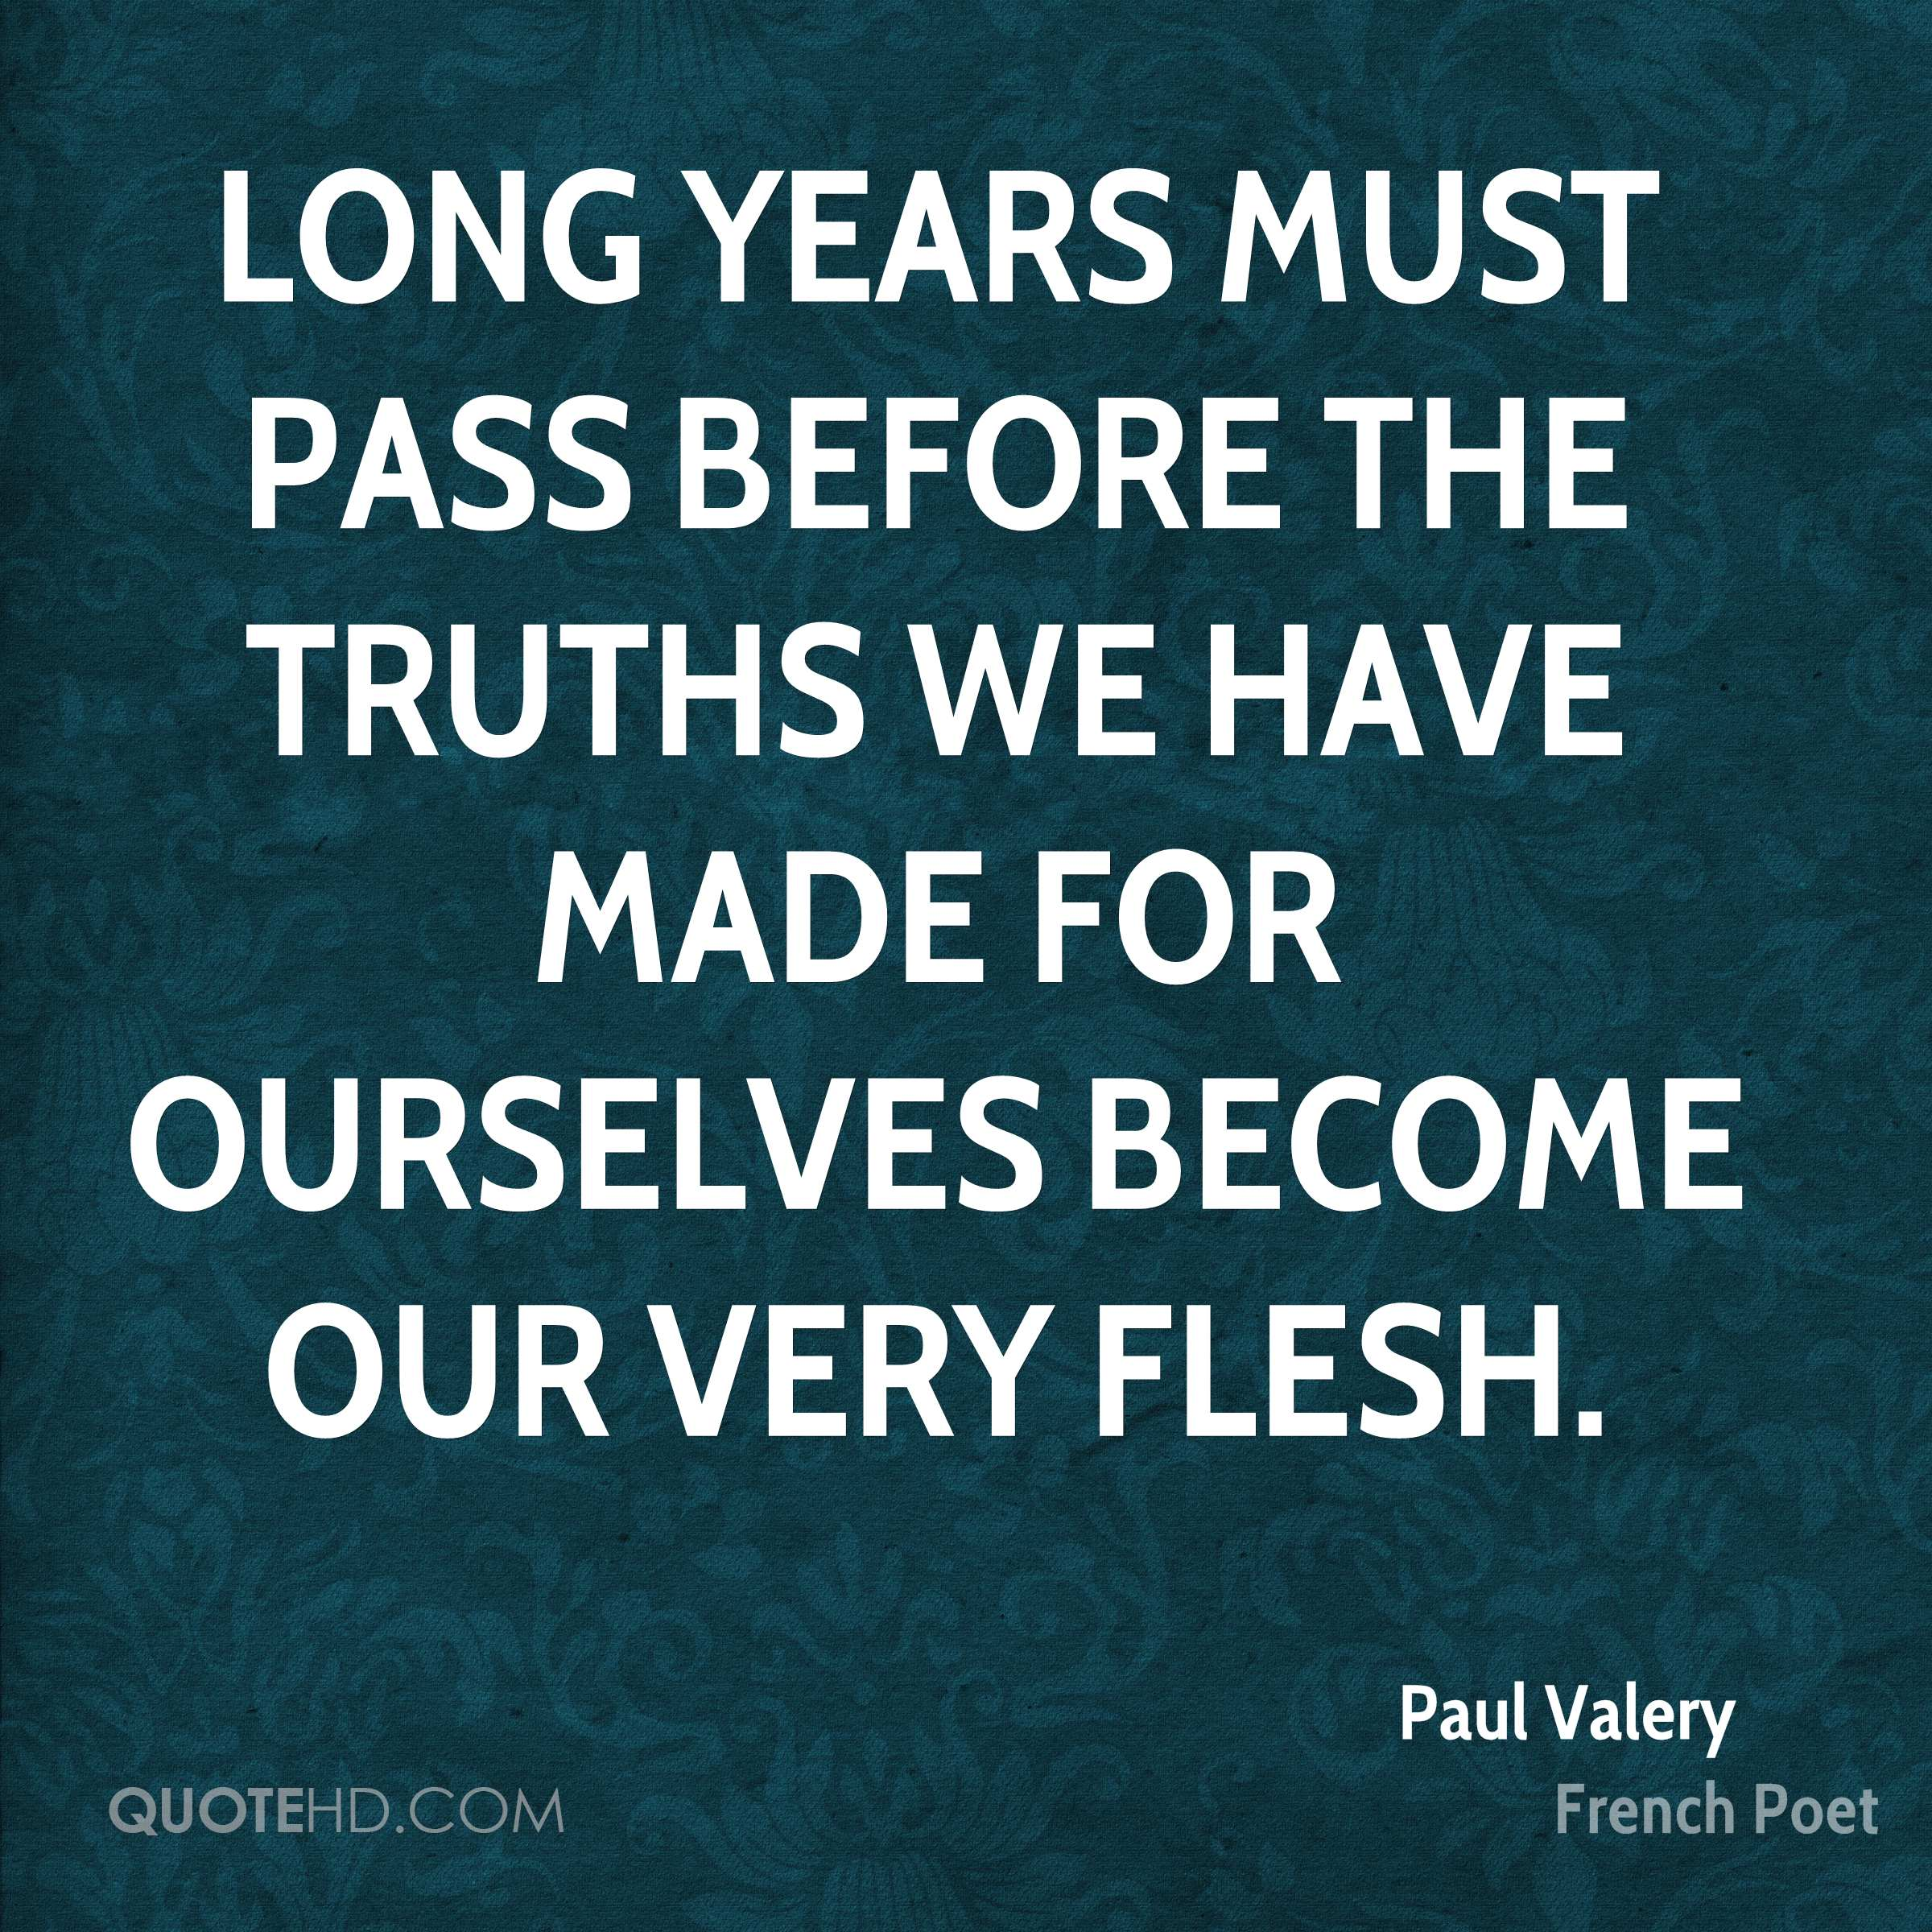 Long years must pass before the truths we have made for ourselves become our very flesh.